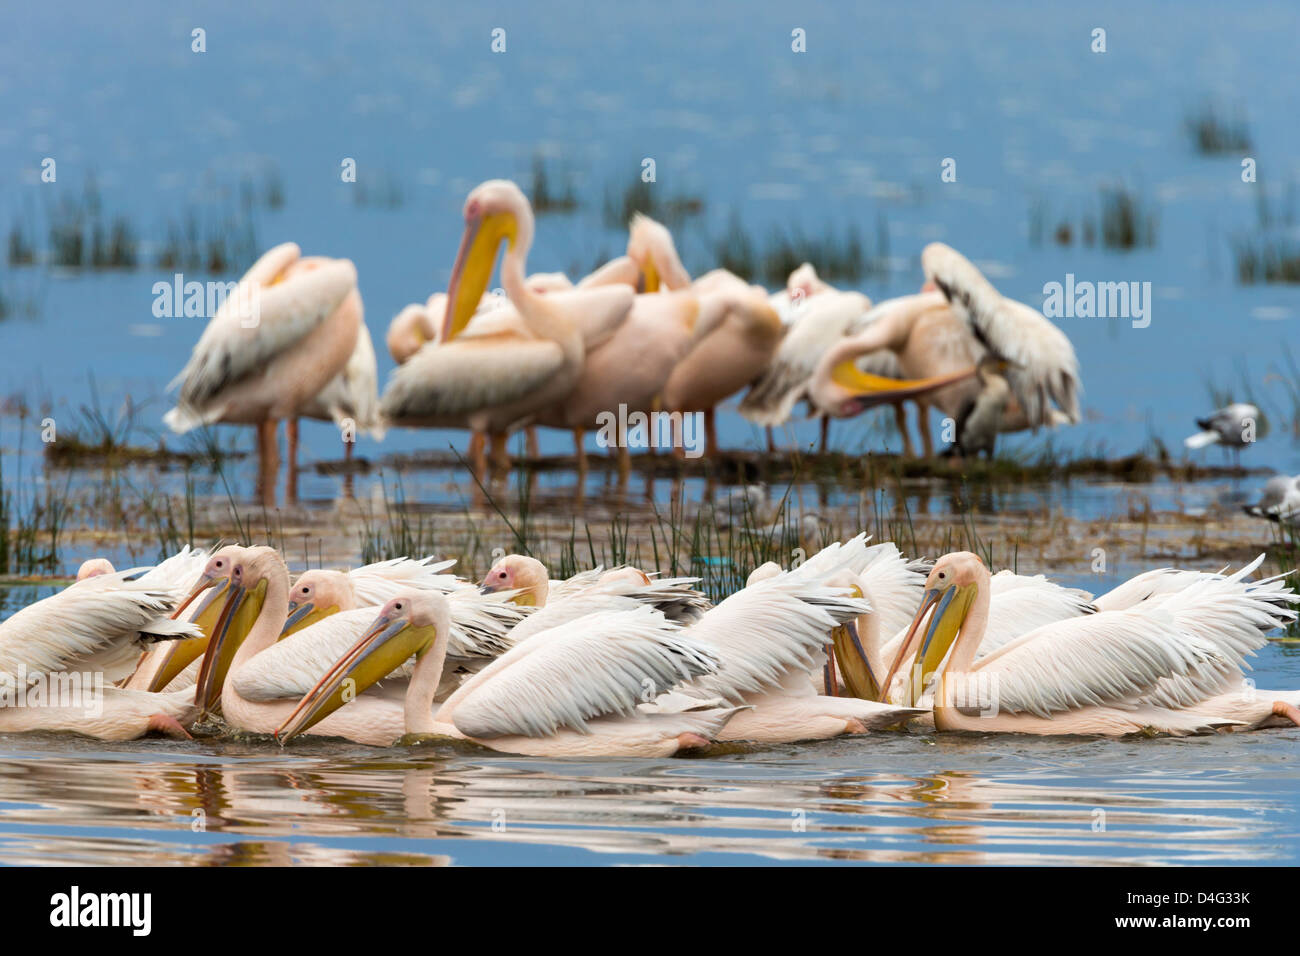 Great white pelicans (Pelecanus onocrotalus), Lake Nakuru National Park, Kenya, September 2012 - Stock Image